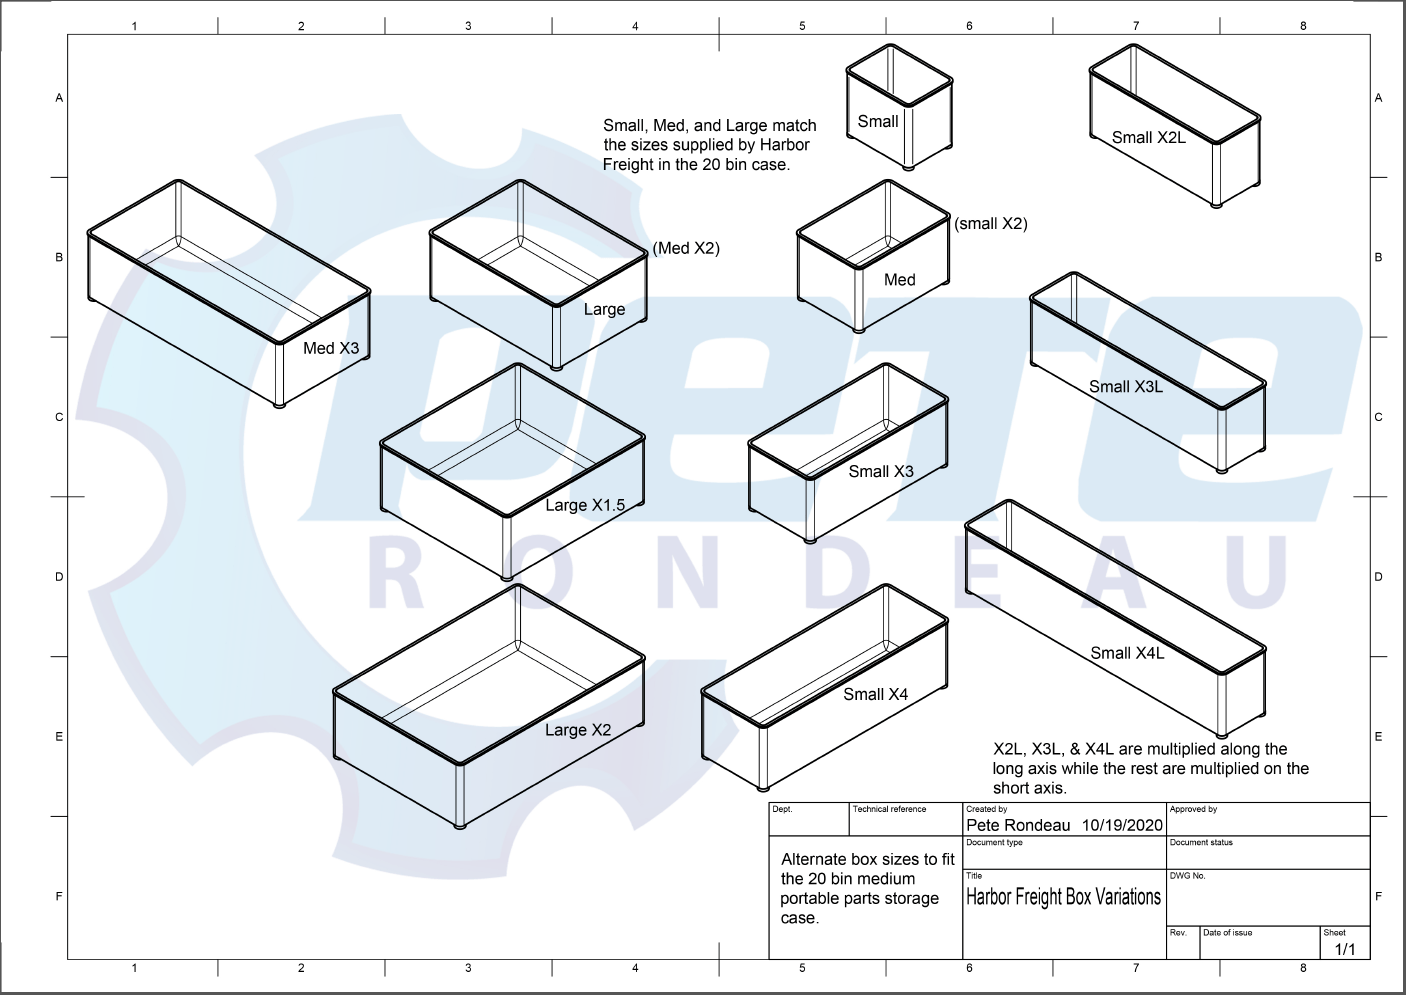 Blueprint of available bine sizes